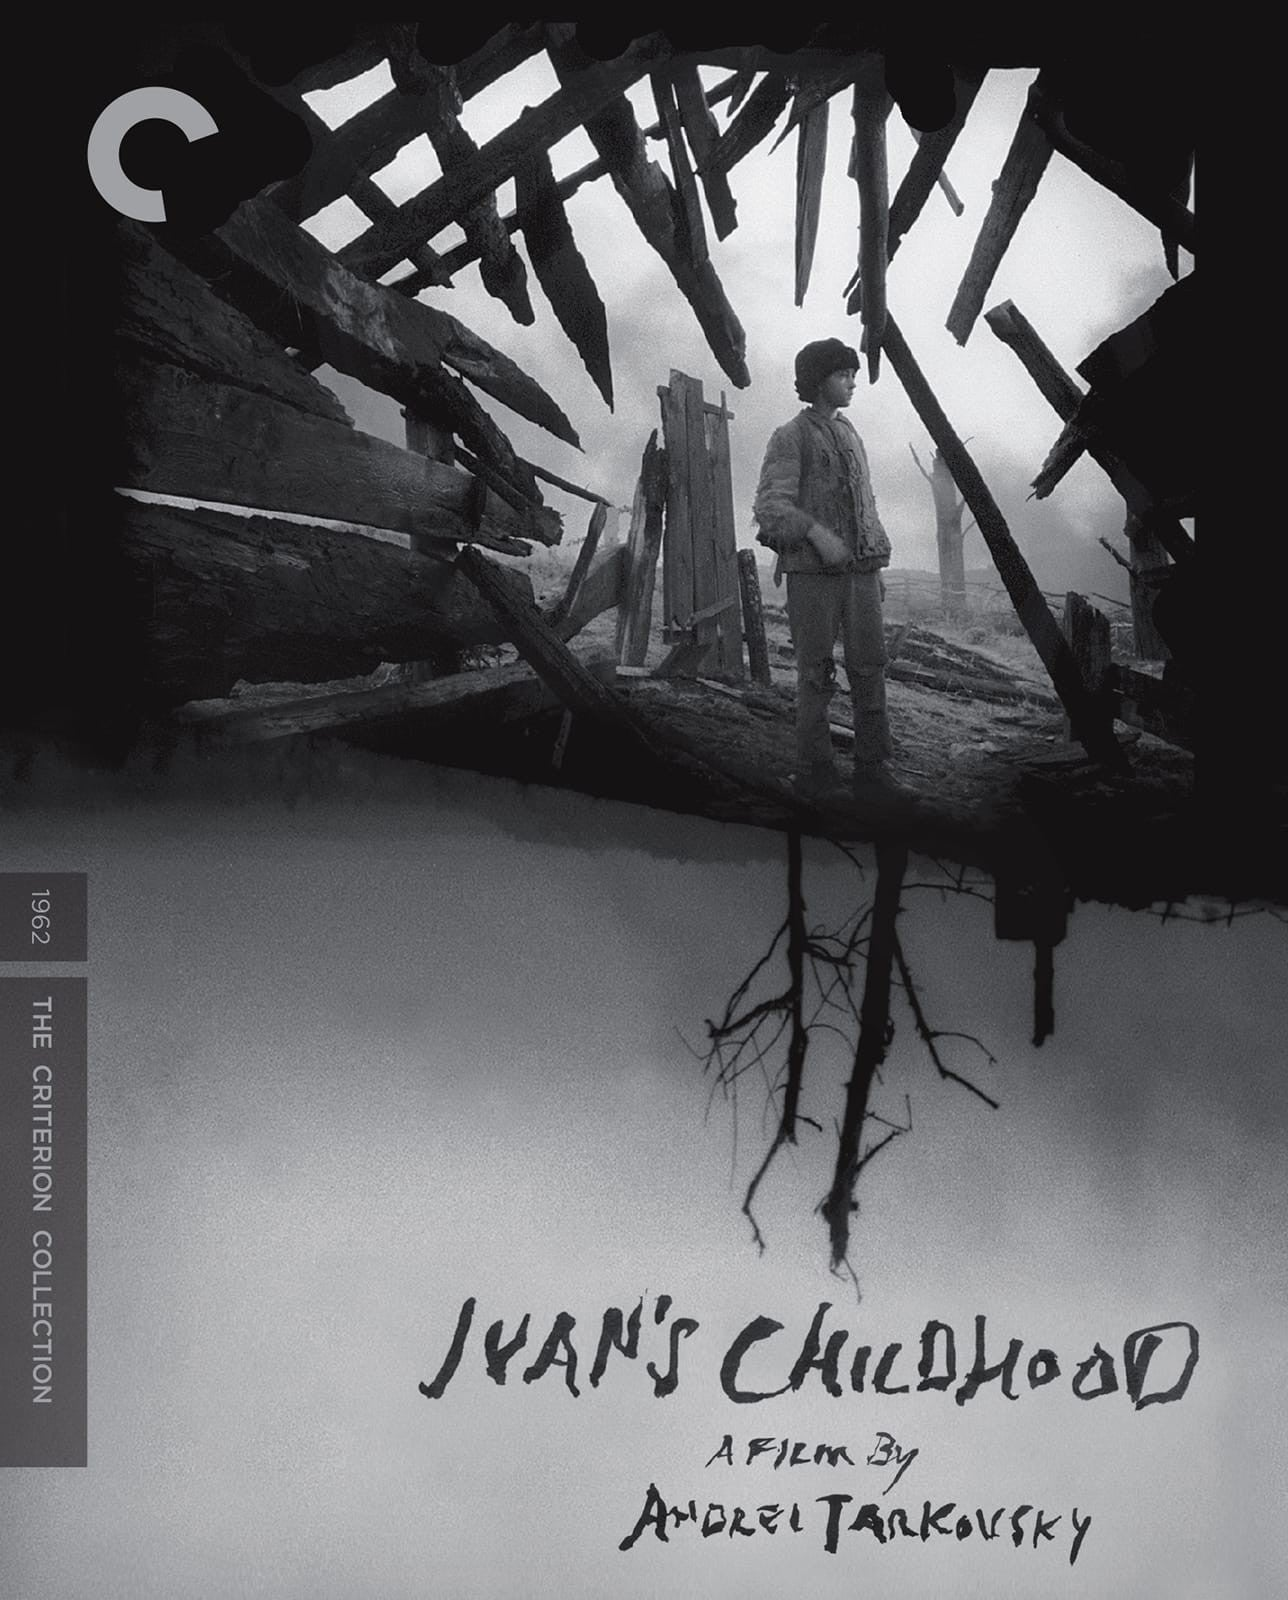 Ivan's Childhood Blu-Ray